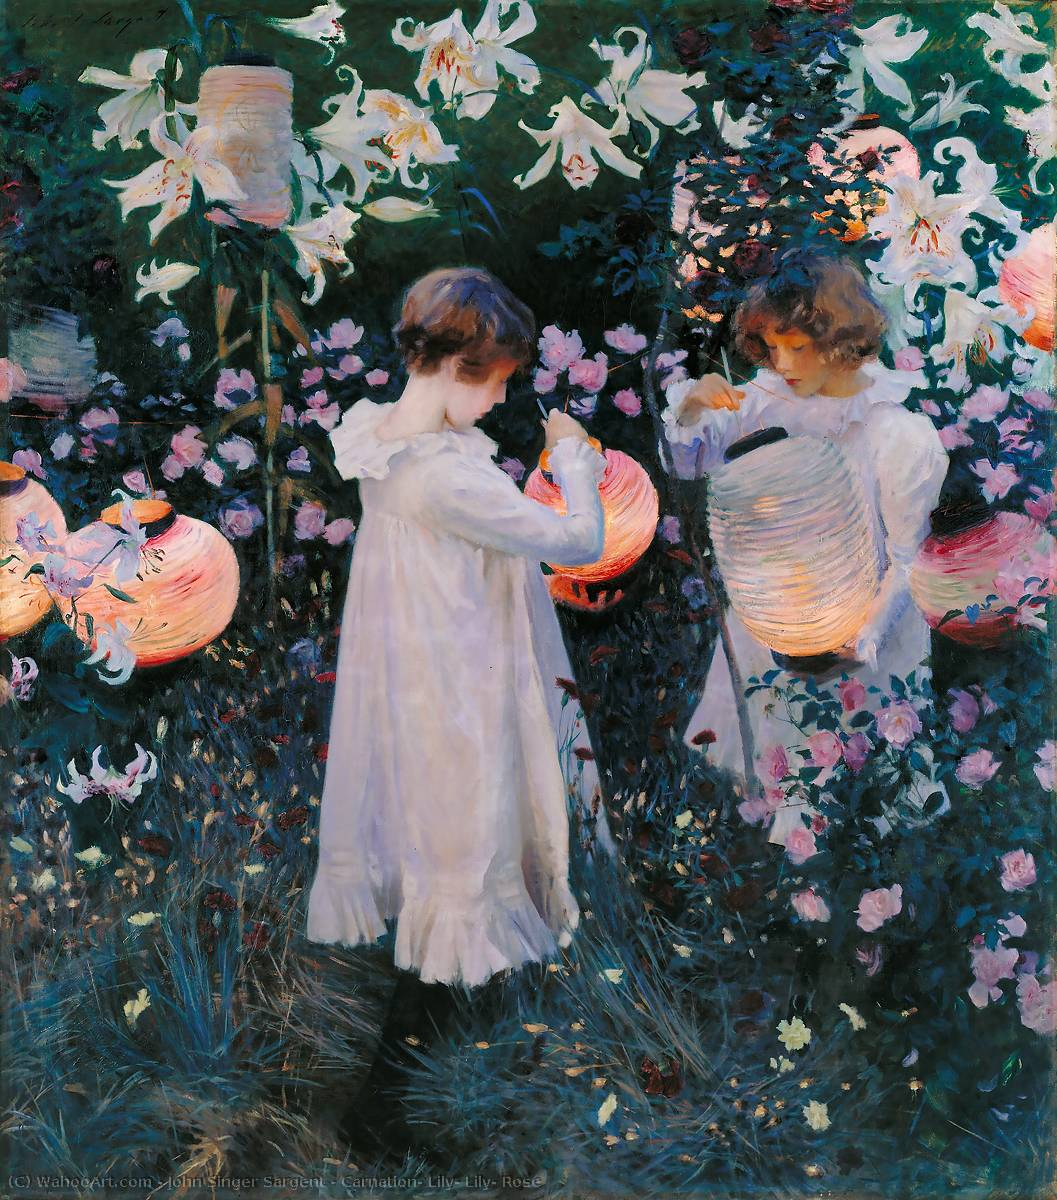 Carnation, Lily, Lily, Rose, 1885 by John Singer Sargent (1856-1925, Italy) | Paintings Reproductions John Singer Sargent | WahooArt.com